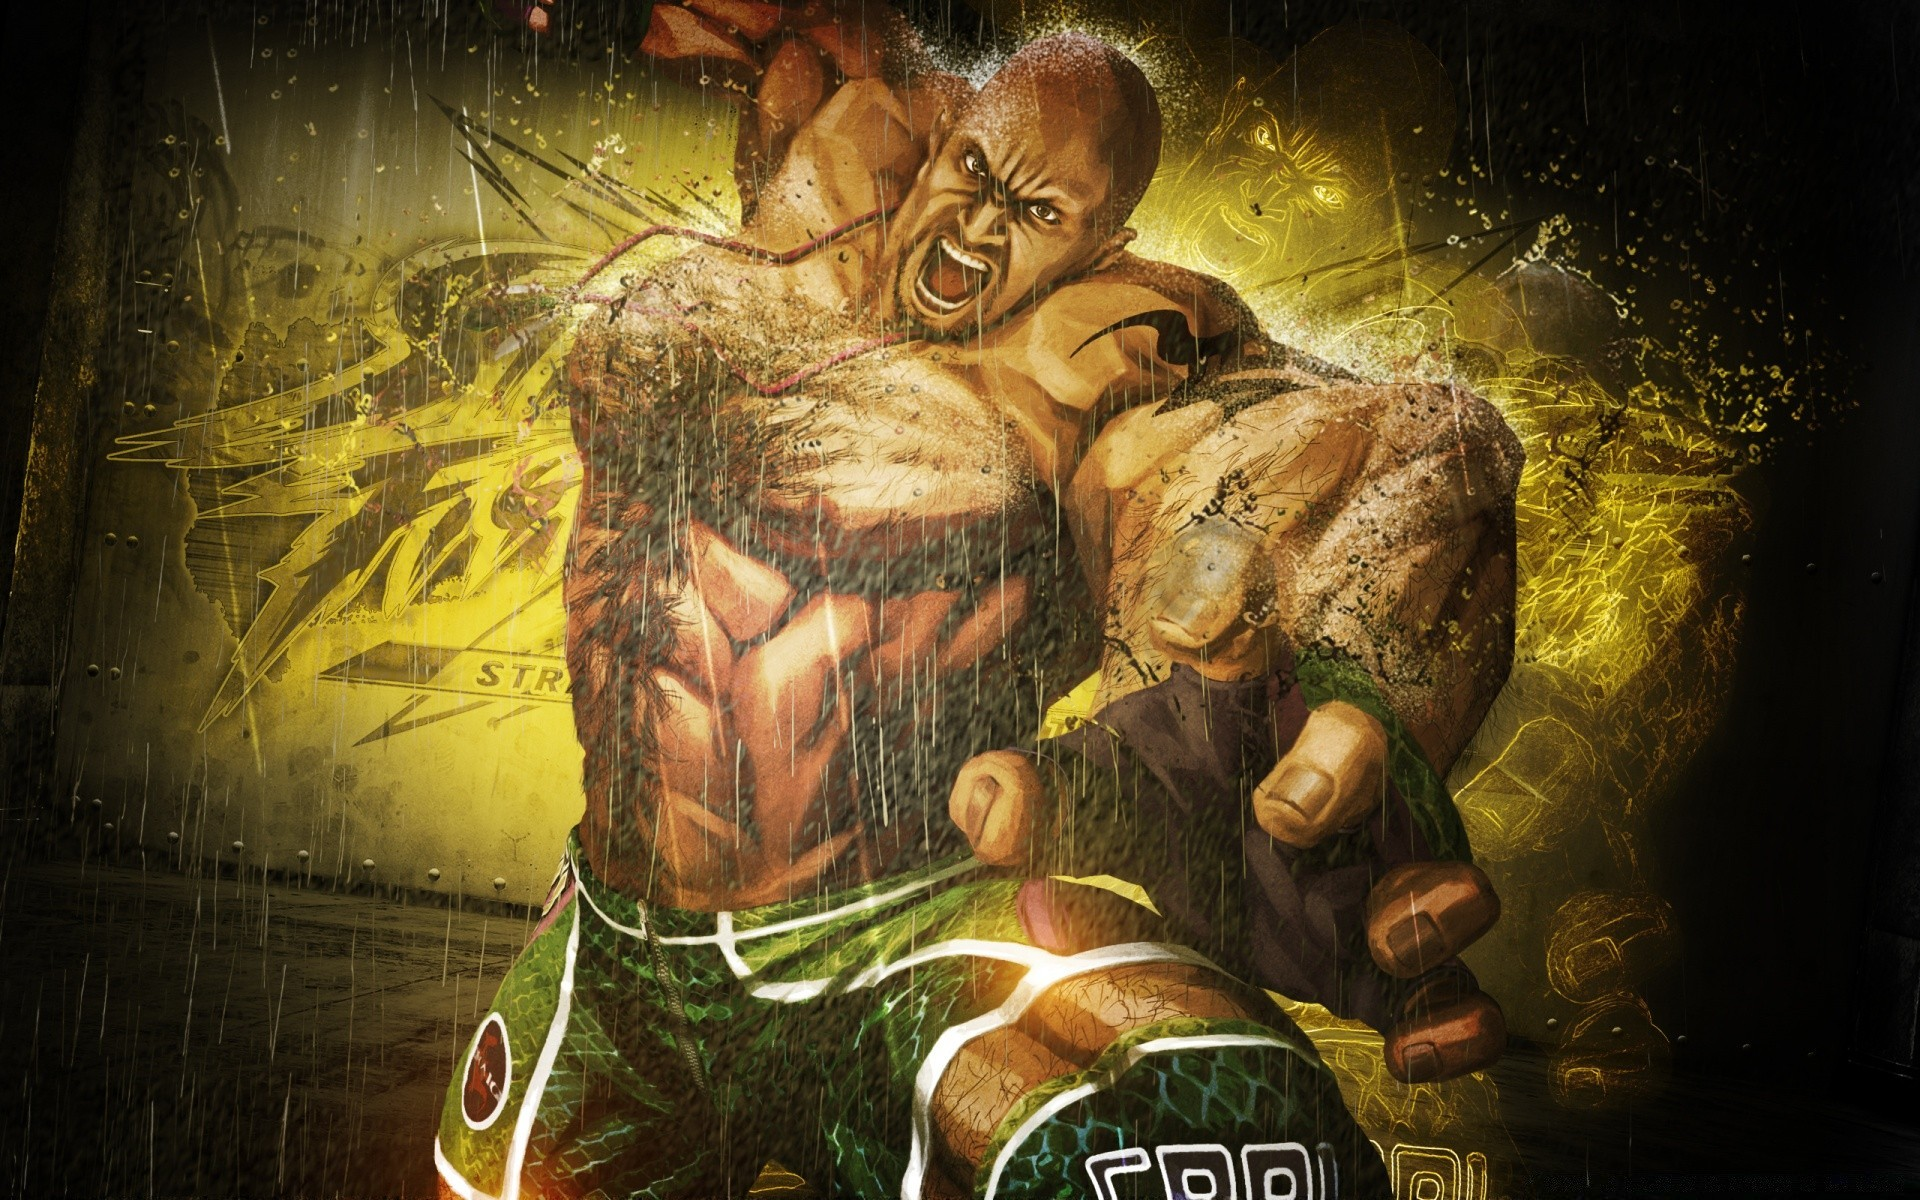 Street Fighter X Tekken 2012 Marduk Android Wallpapers